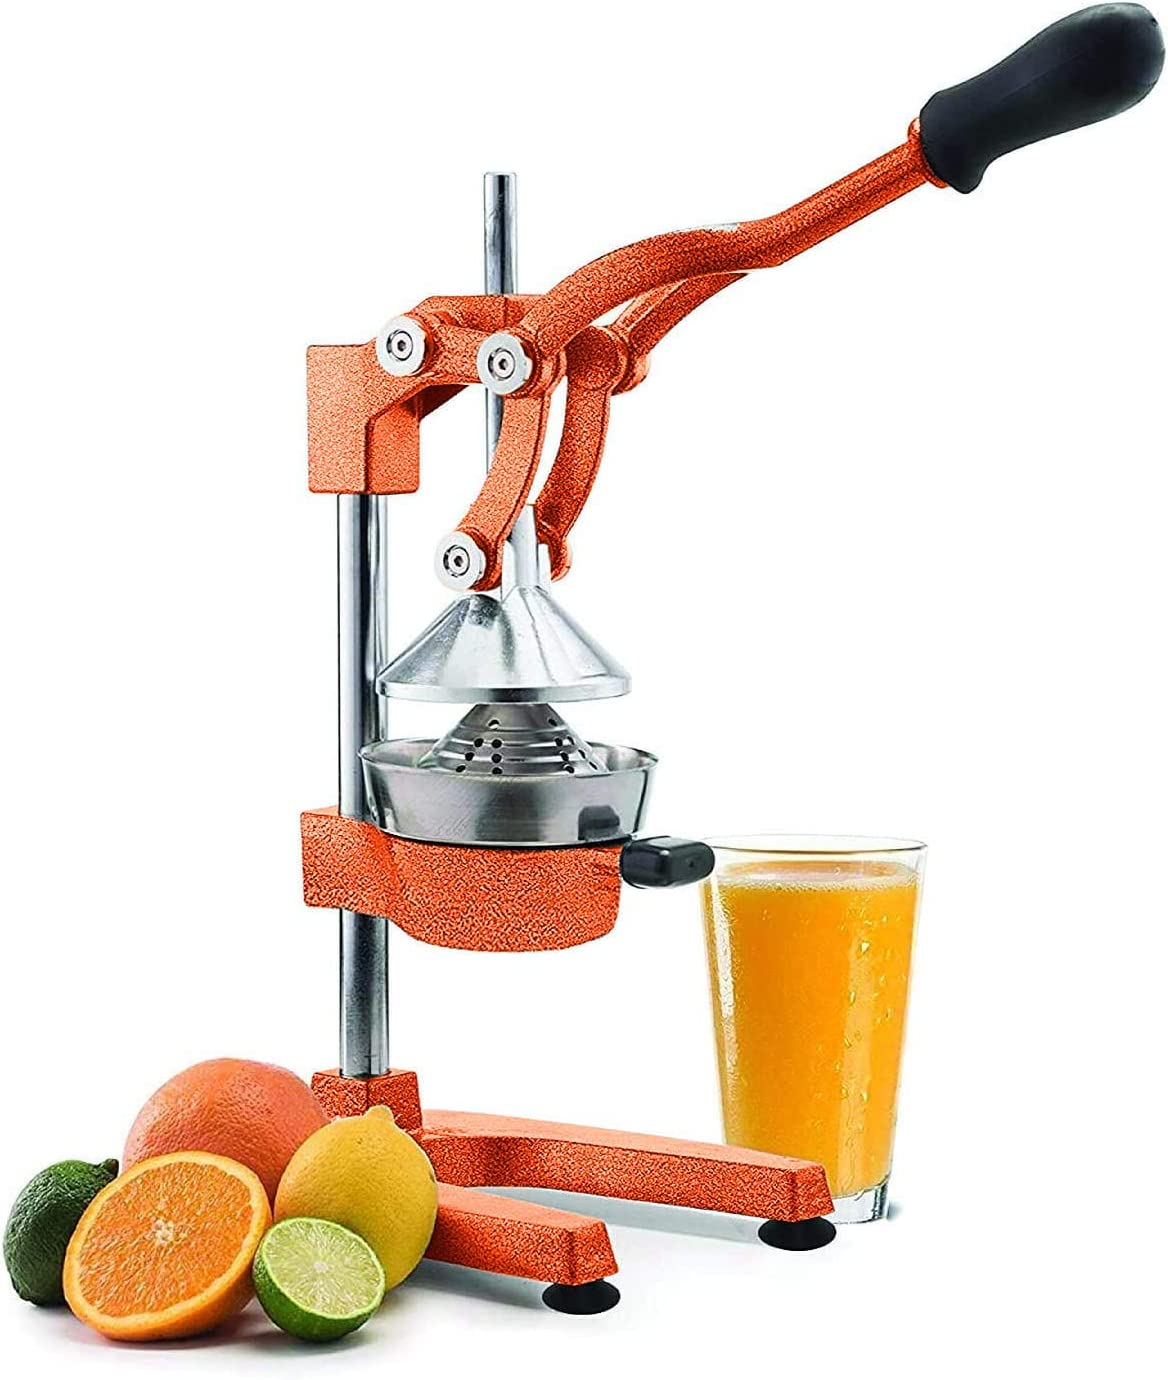 Manual Fruit Juicer - Commercial Grade Home Citrus Lever Squeezer for Oranges, Lemons, Limes, Grapefruits and More - Stainless Steel and Cast Iron - Non-skid Suction Cup Base - 15 Inch - Orange - by Vollum